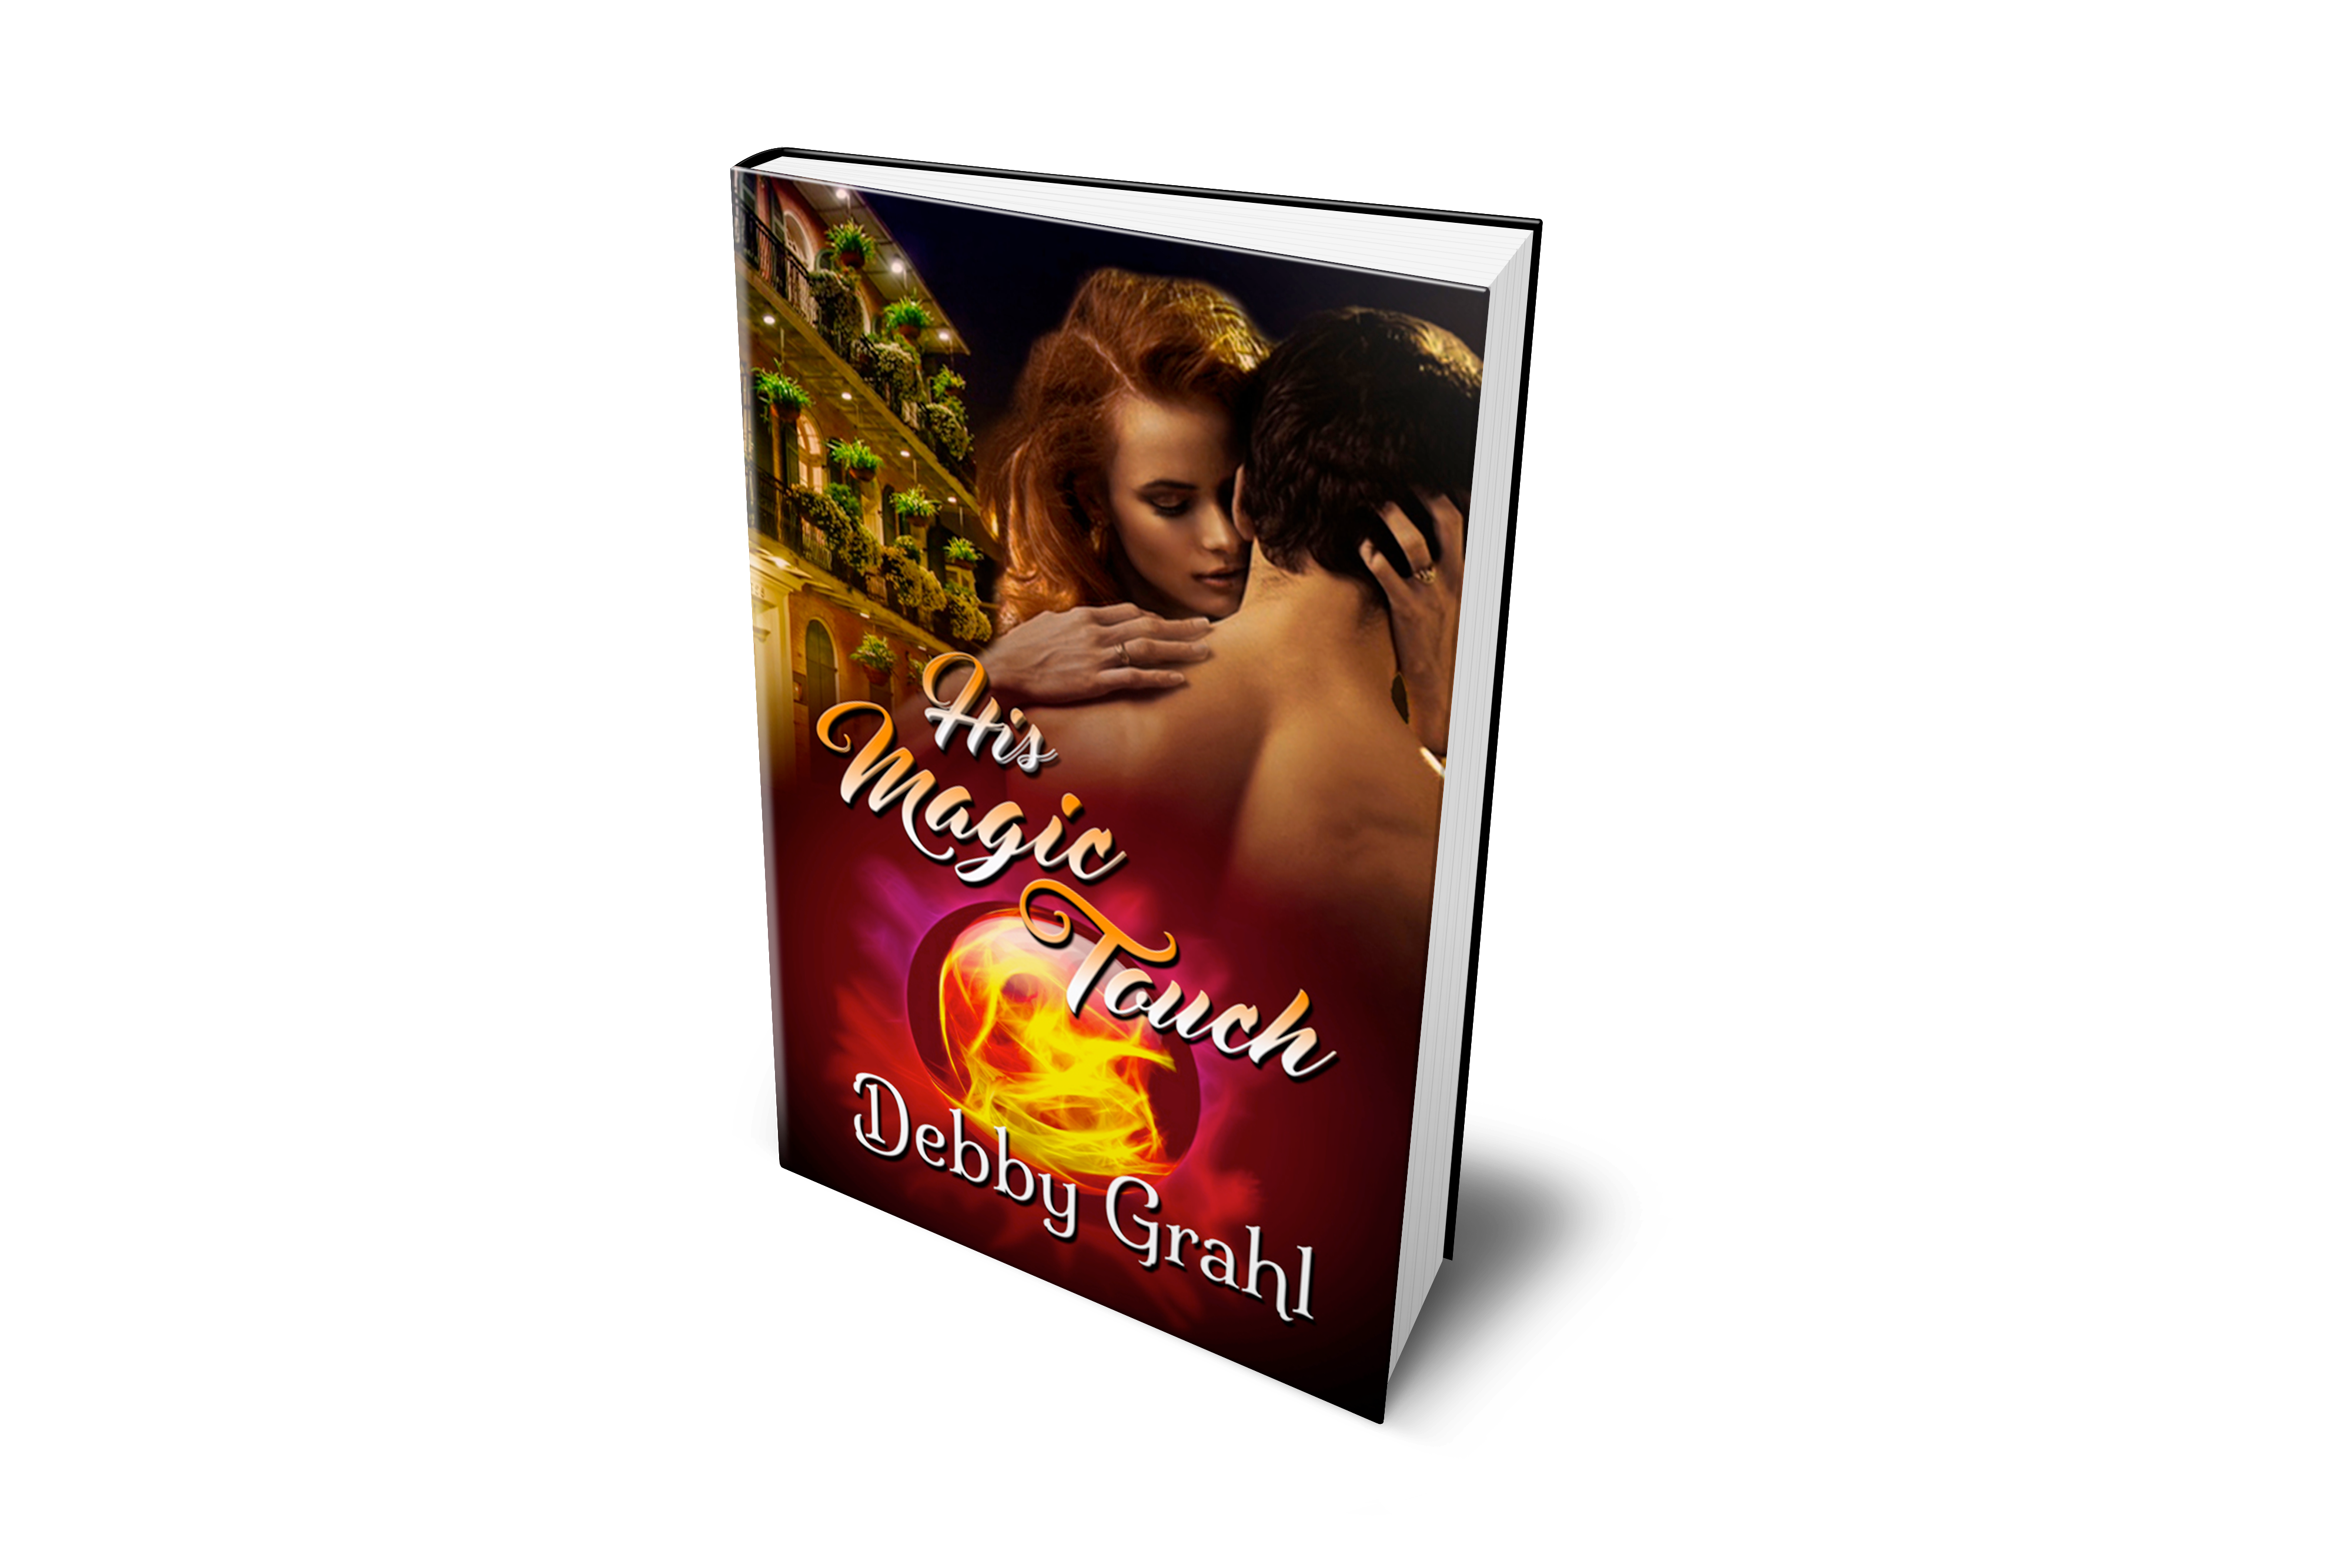 His Magic Touch by Debby Grahl 3D Book Cover Mockup (2).png